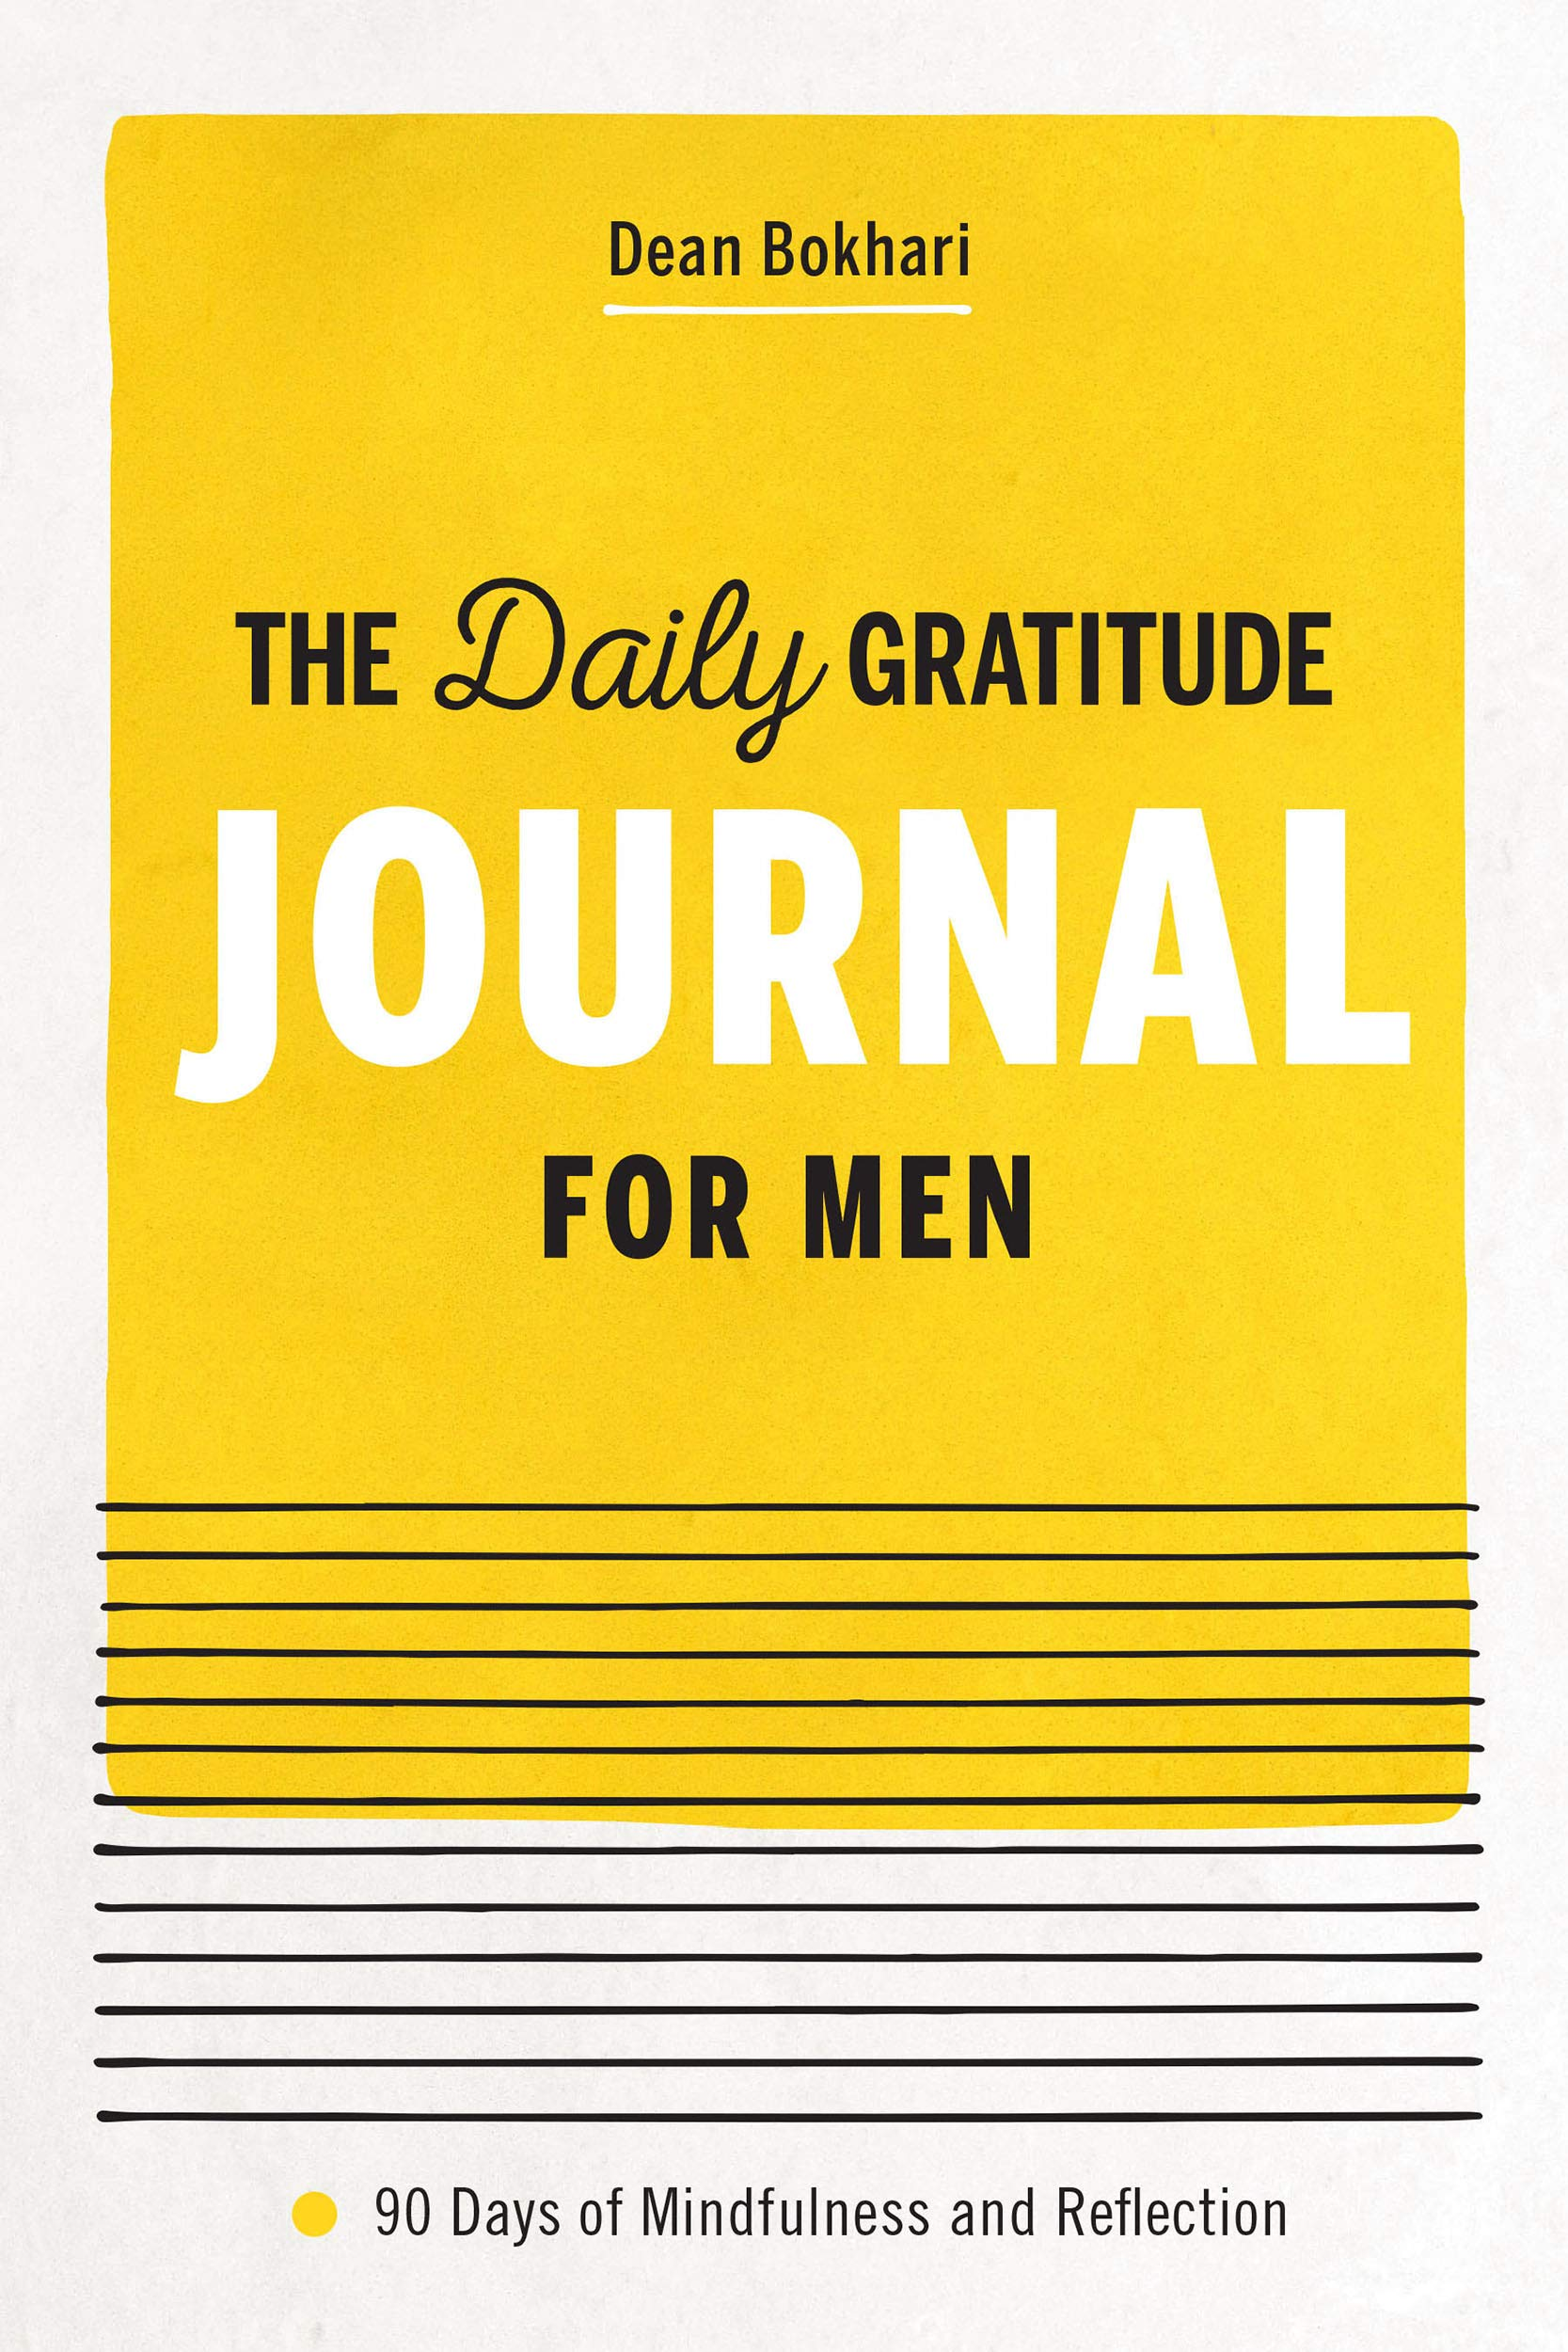 Daily_Gratitude_Journal_for_Men_by_Dean_Bokhari_Book_Cover